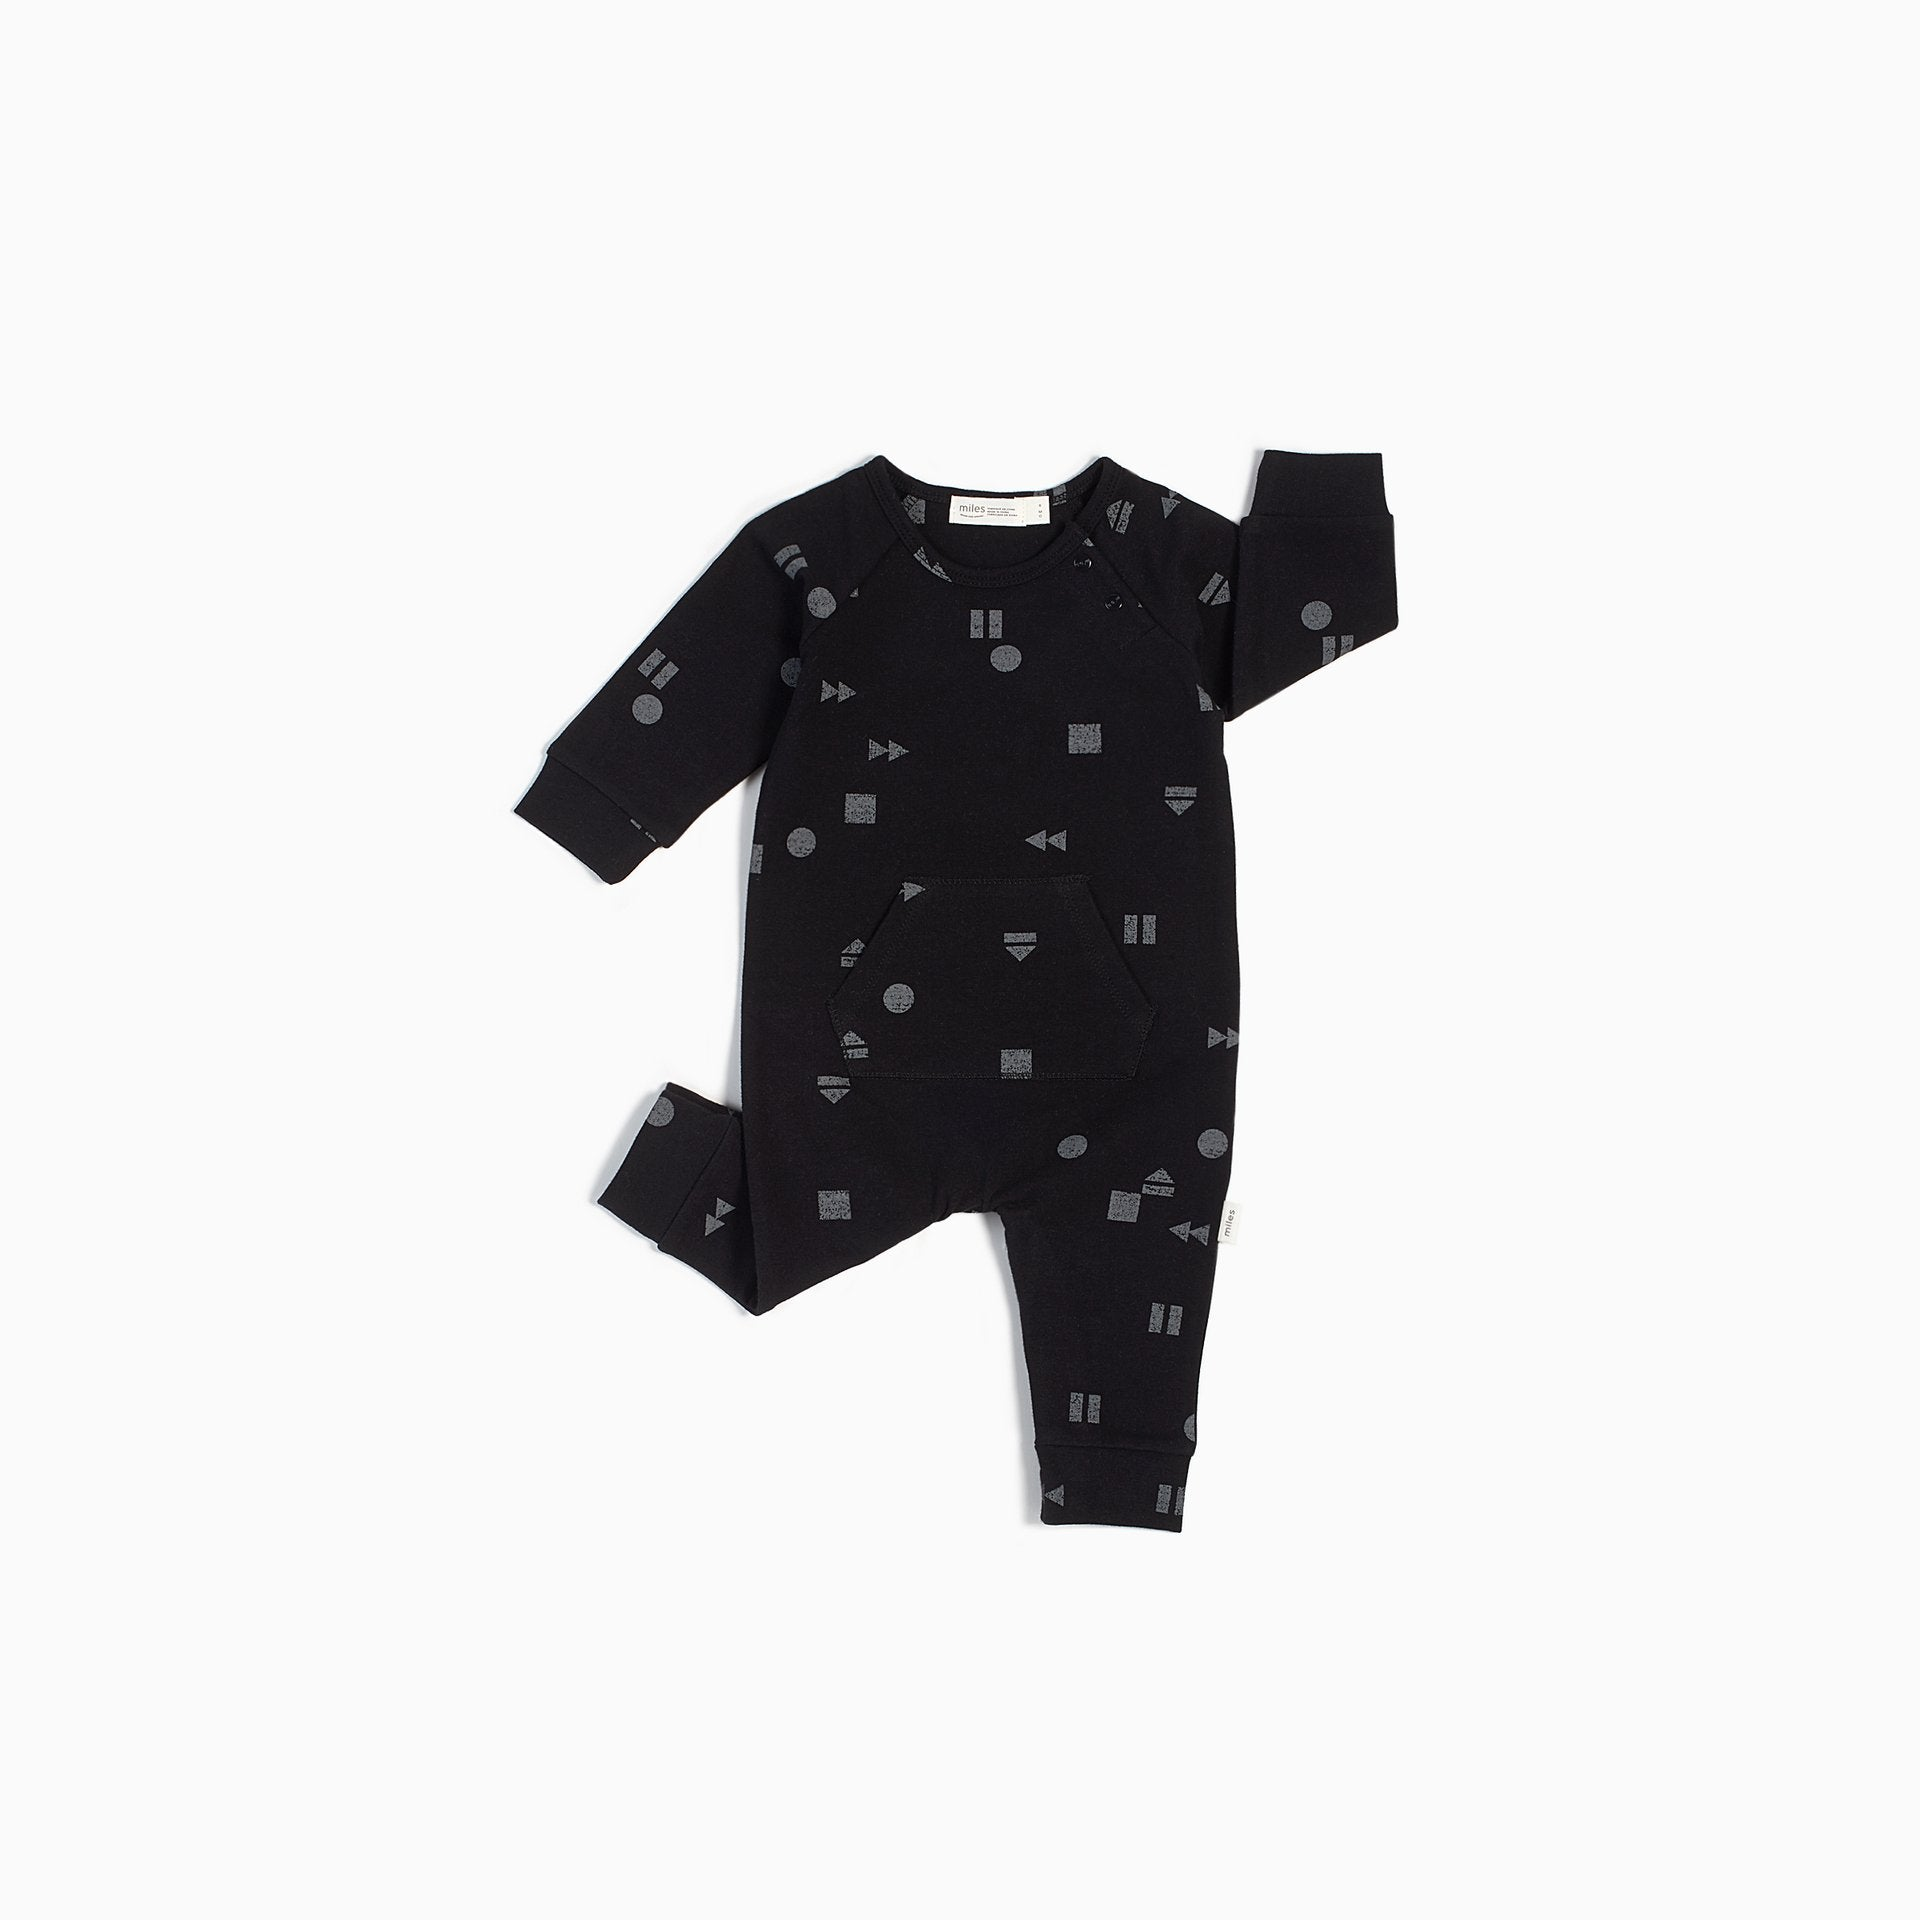 Black Play/Replay Playsuit - Lullaby's Boutique